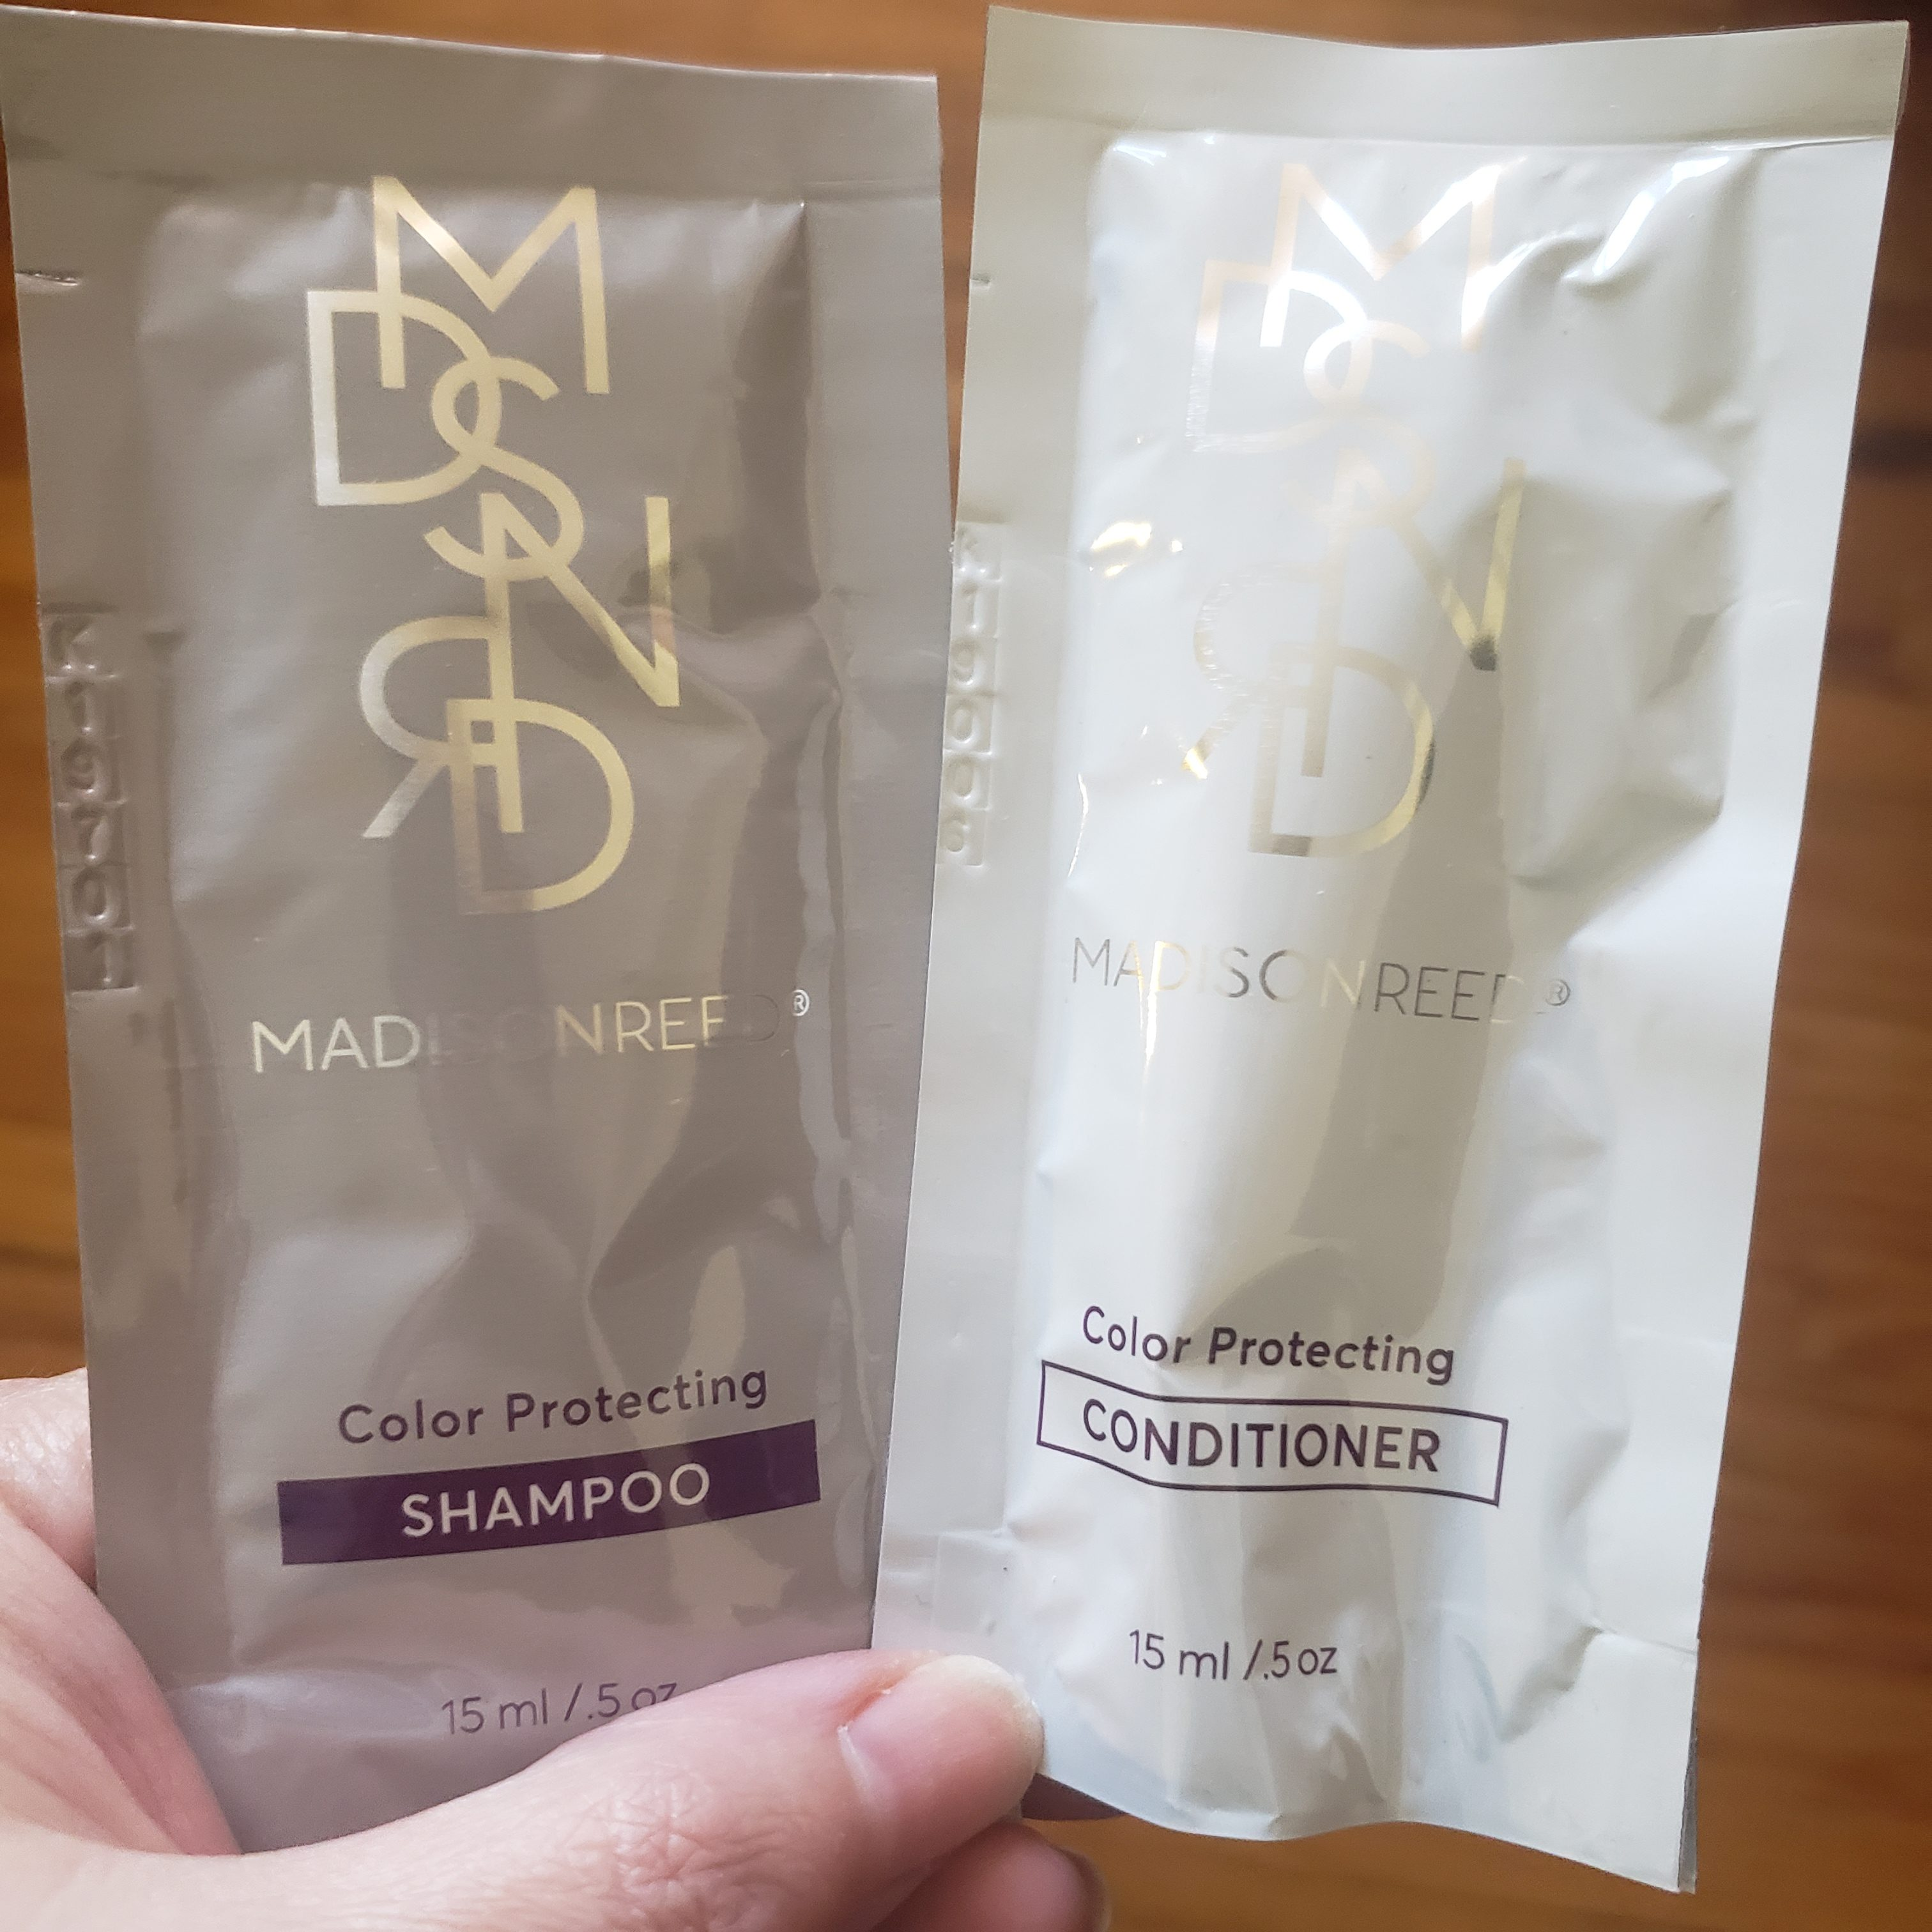 Unopened packets of Madison Reed shampoo and conditioner